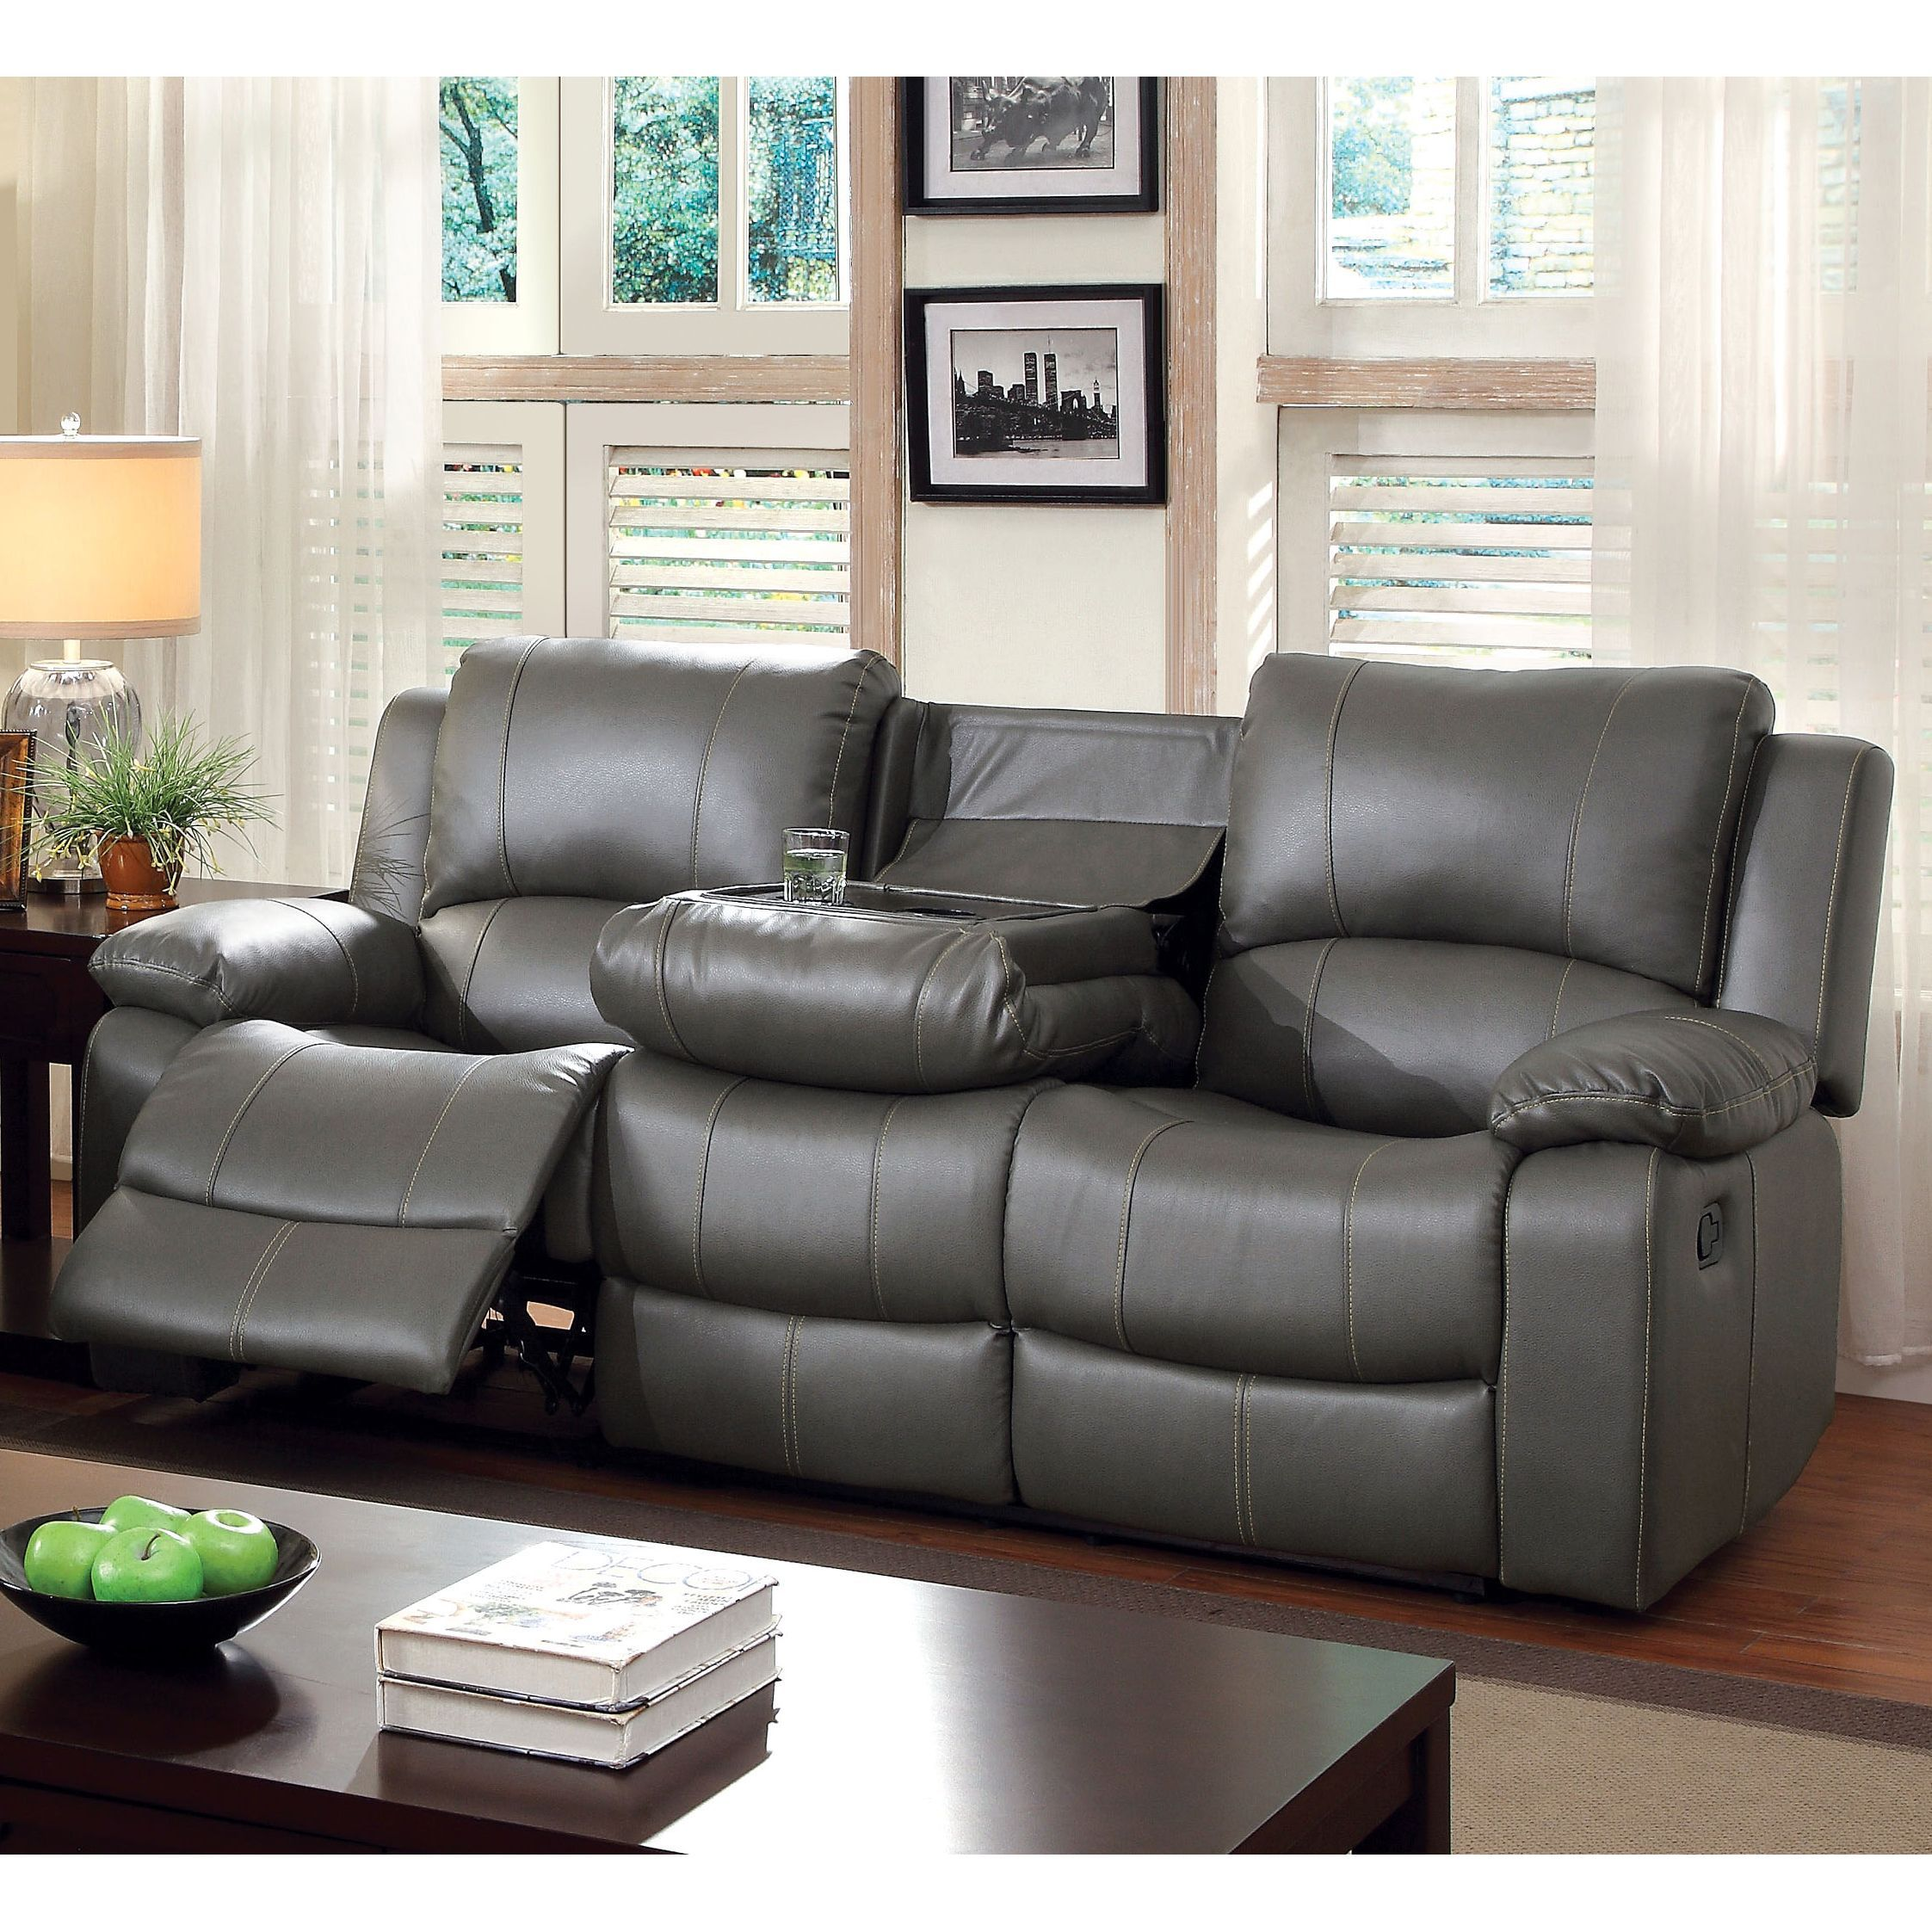 leather amsterdam furniture classic shop recliners room recliner living sofa str home oc